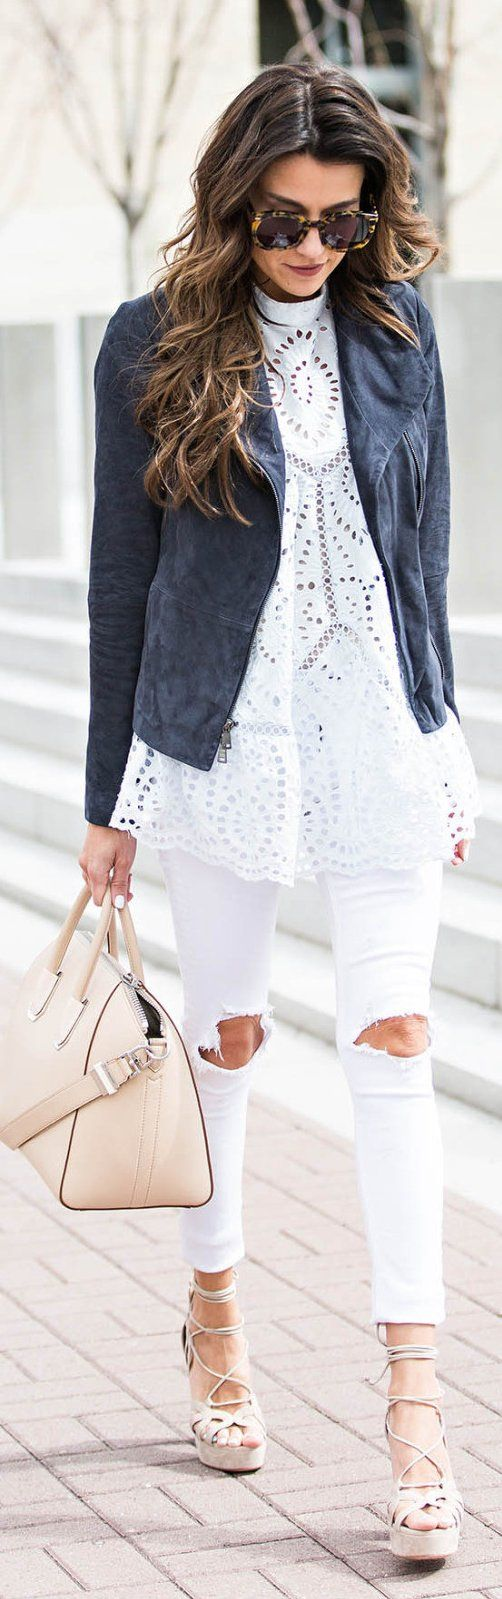 #winter #fashion /  Dark Jacket / White Lace Top / White Destroyed Skinny Jeans / Laced Up Platform